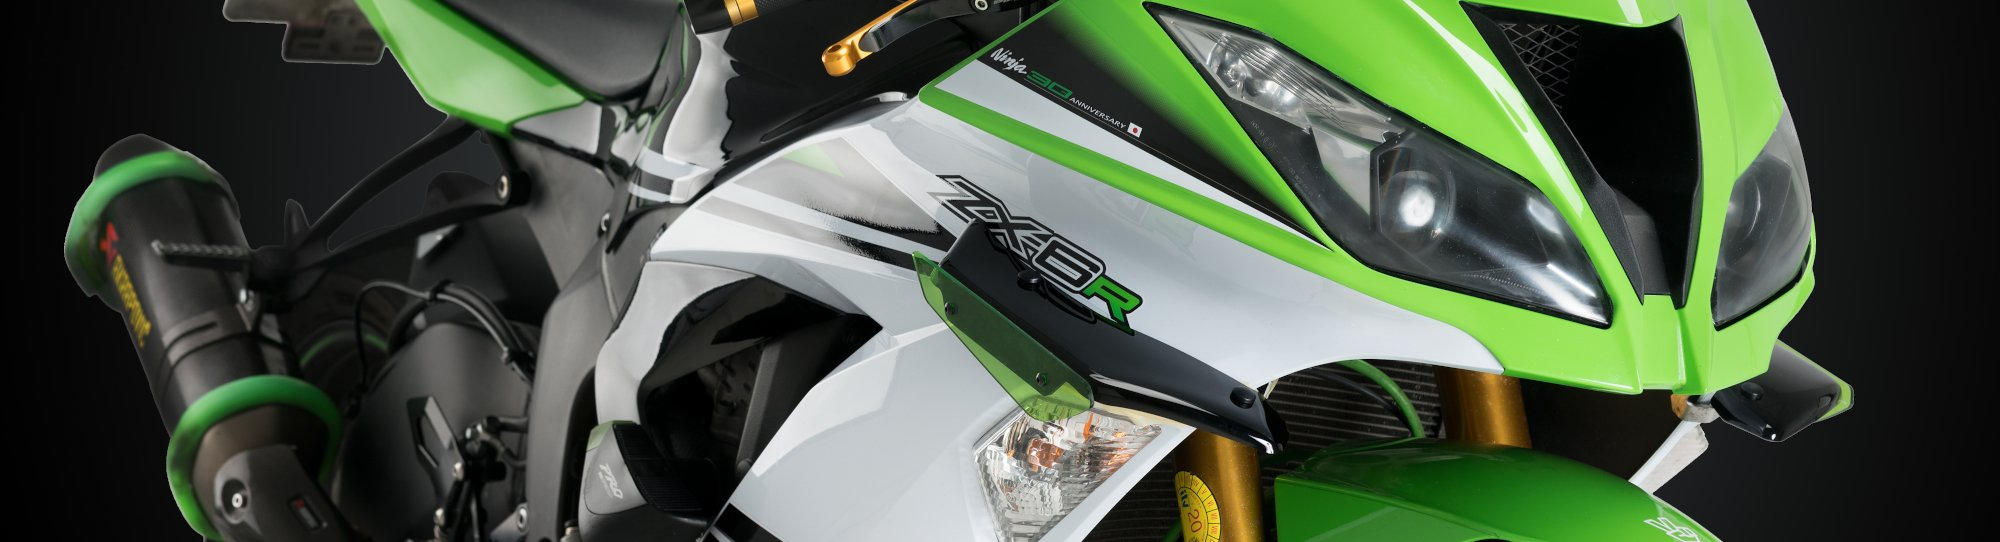 Puig Downforce Spoilers Kawasaki